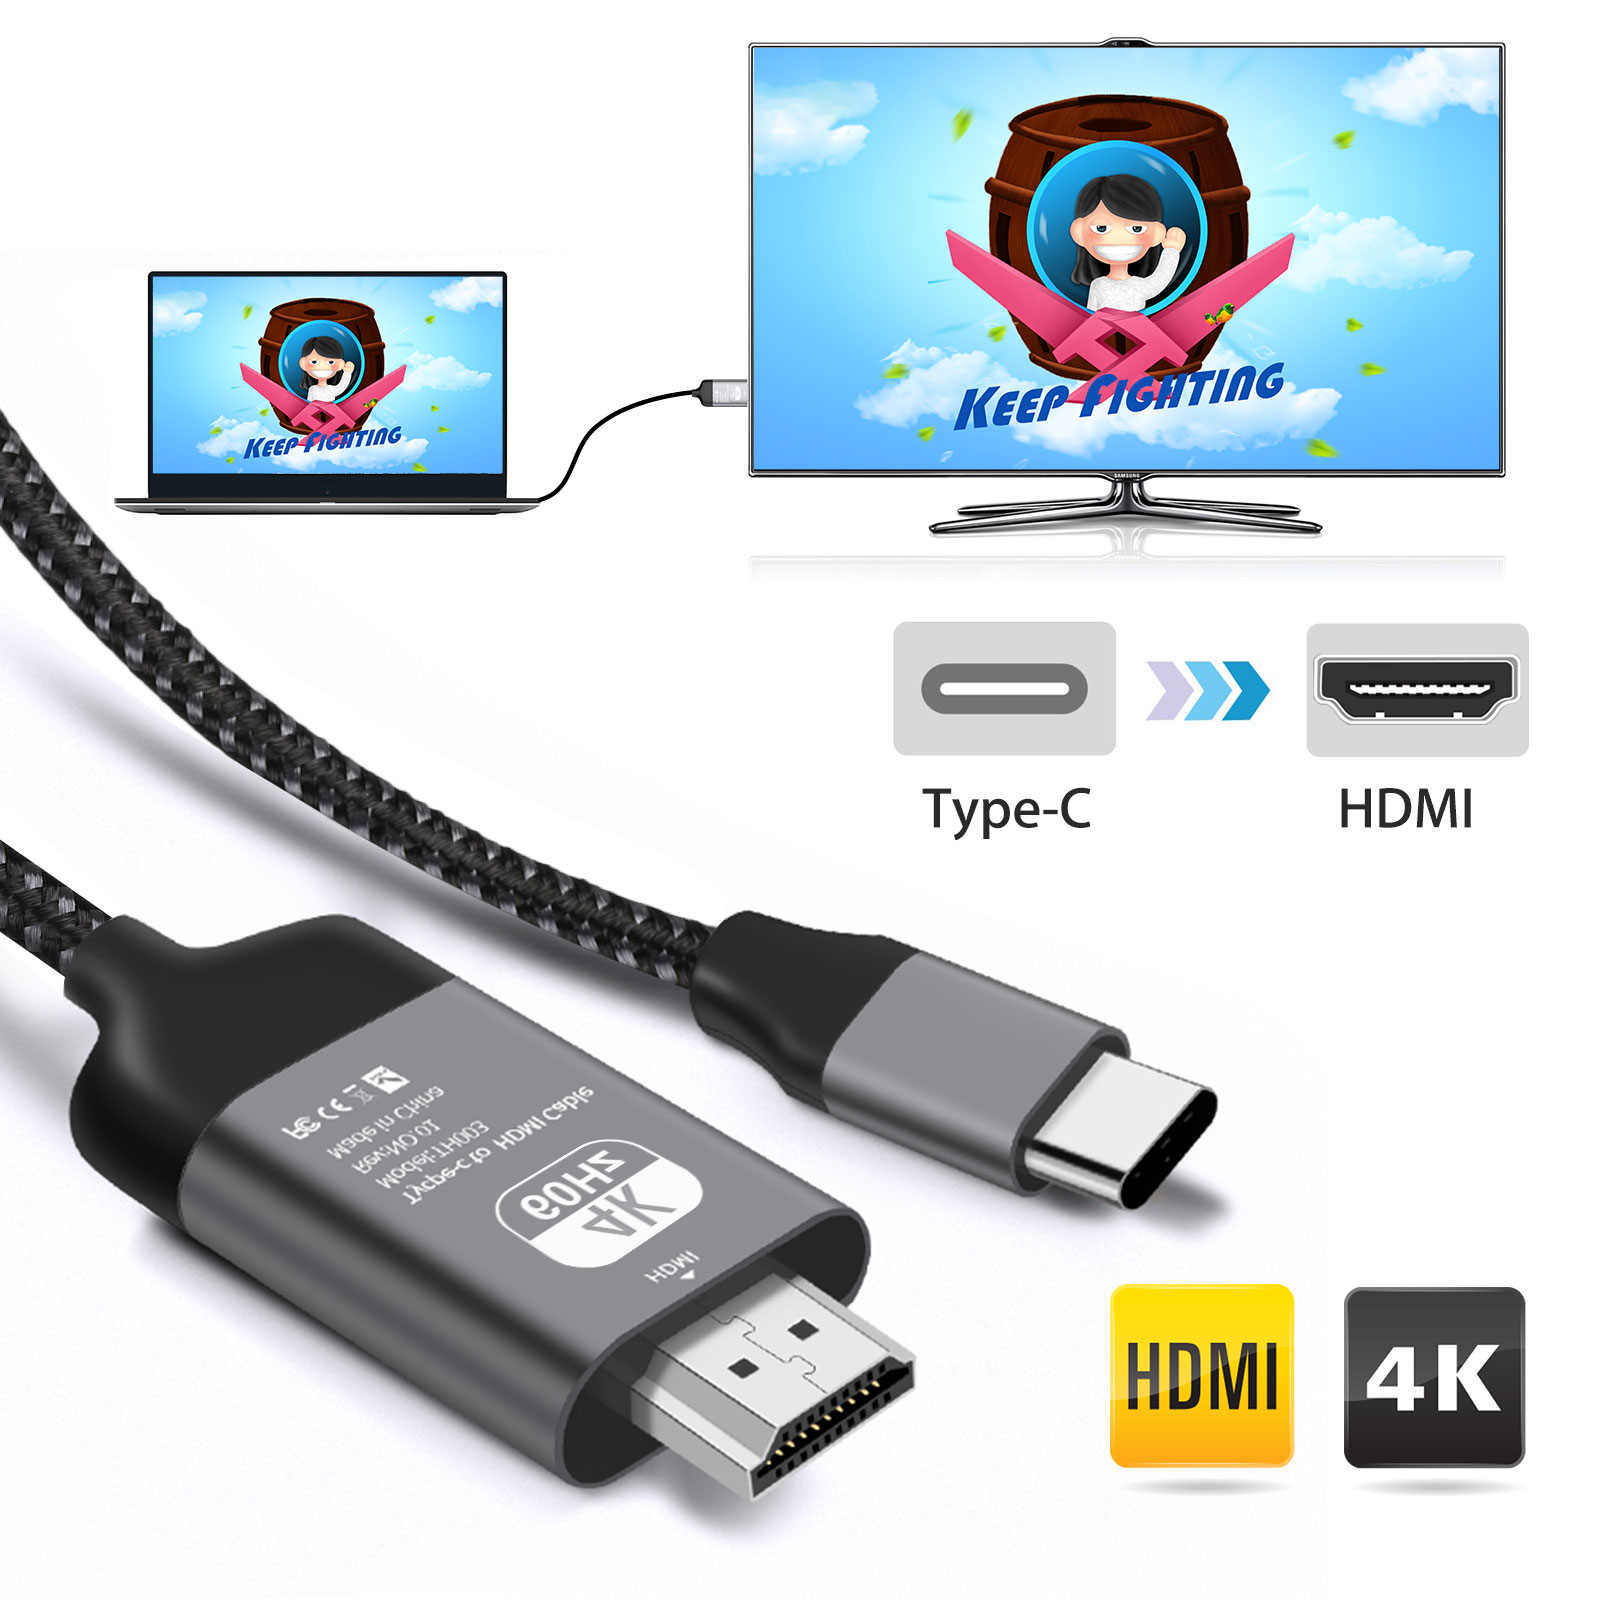 USB-C Type-C to HDMI HDTV Adapter for Samsung Galaxy S9 S8 Note 8 LG G6//G5//V20